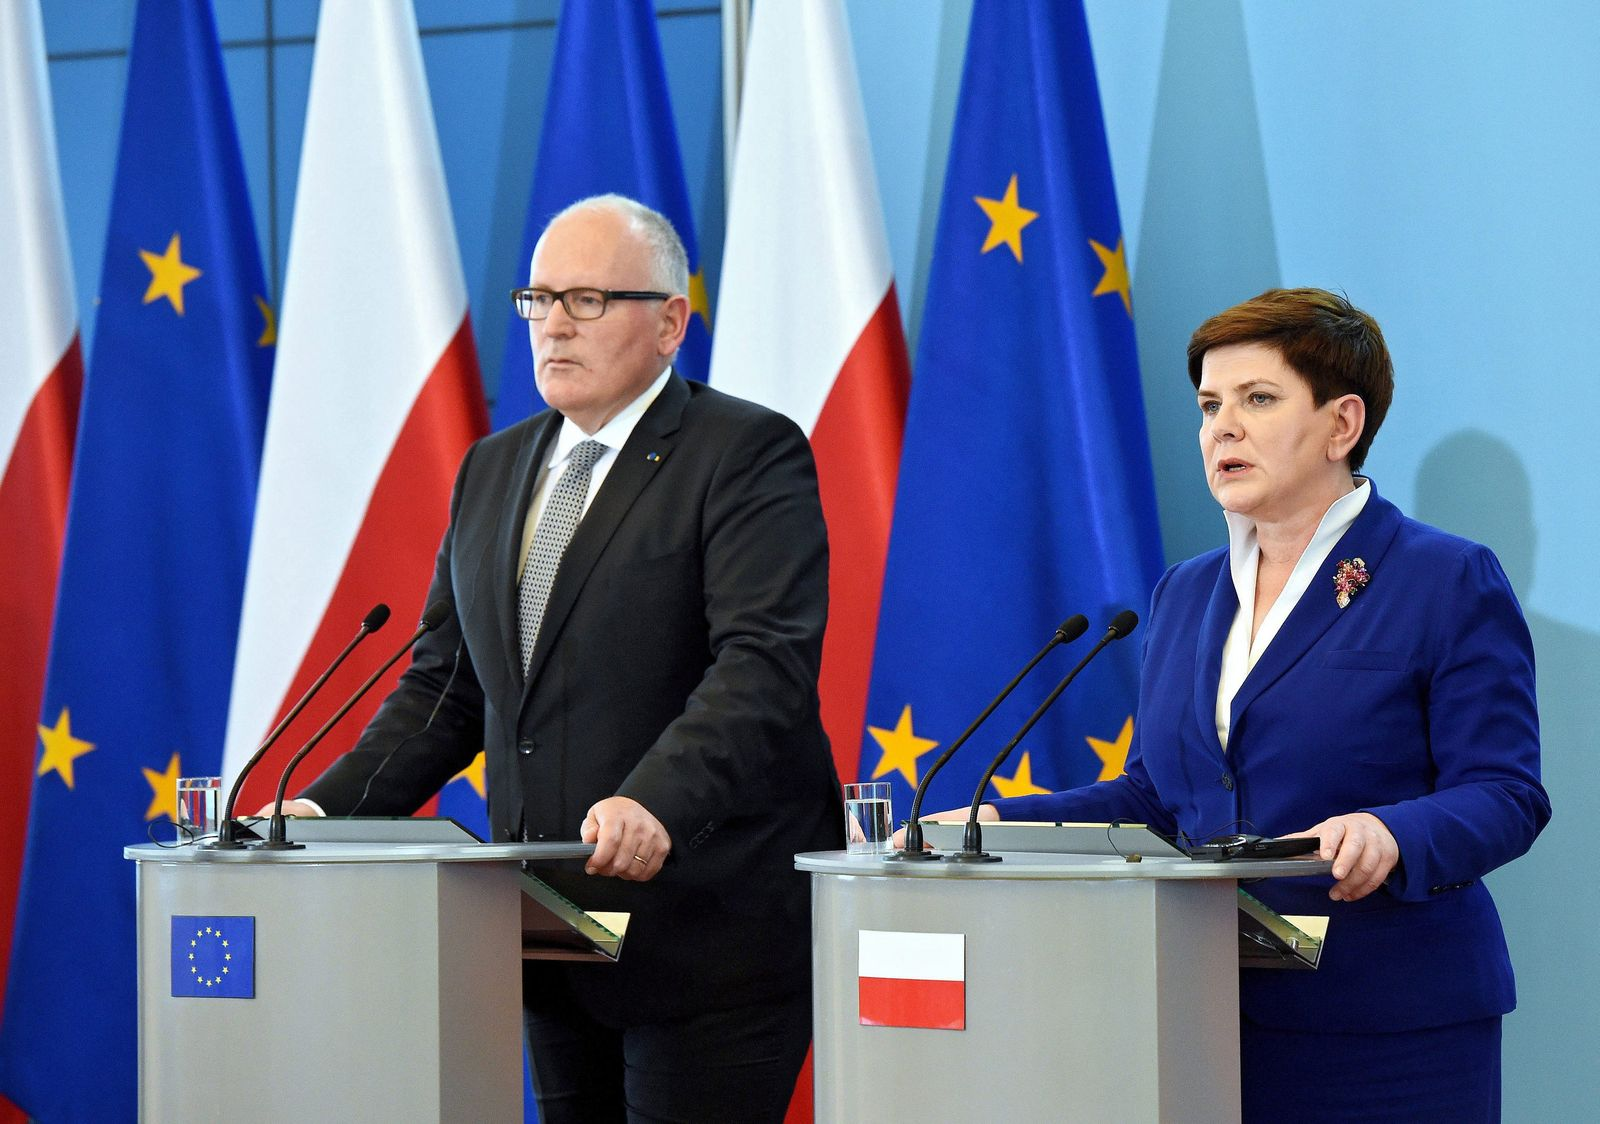 European Commission First Vice-President Frans Timmermans in Pola